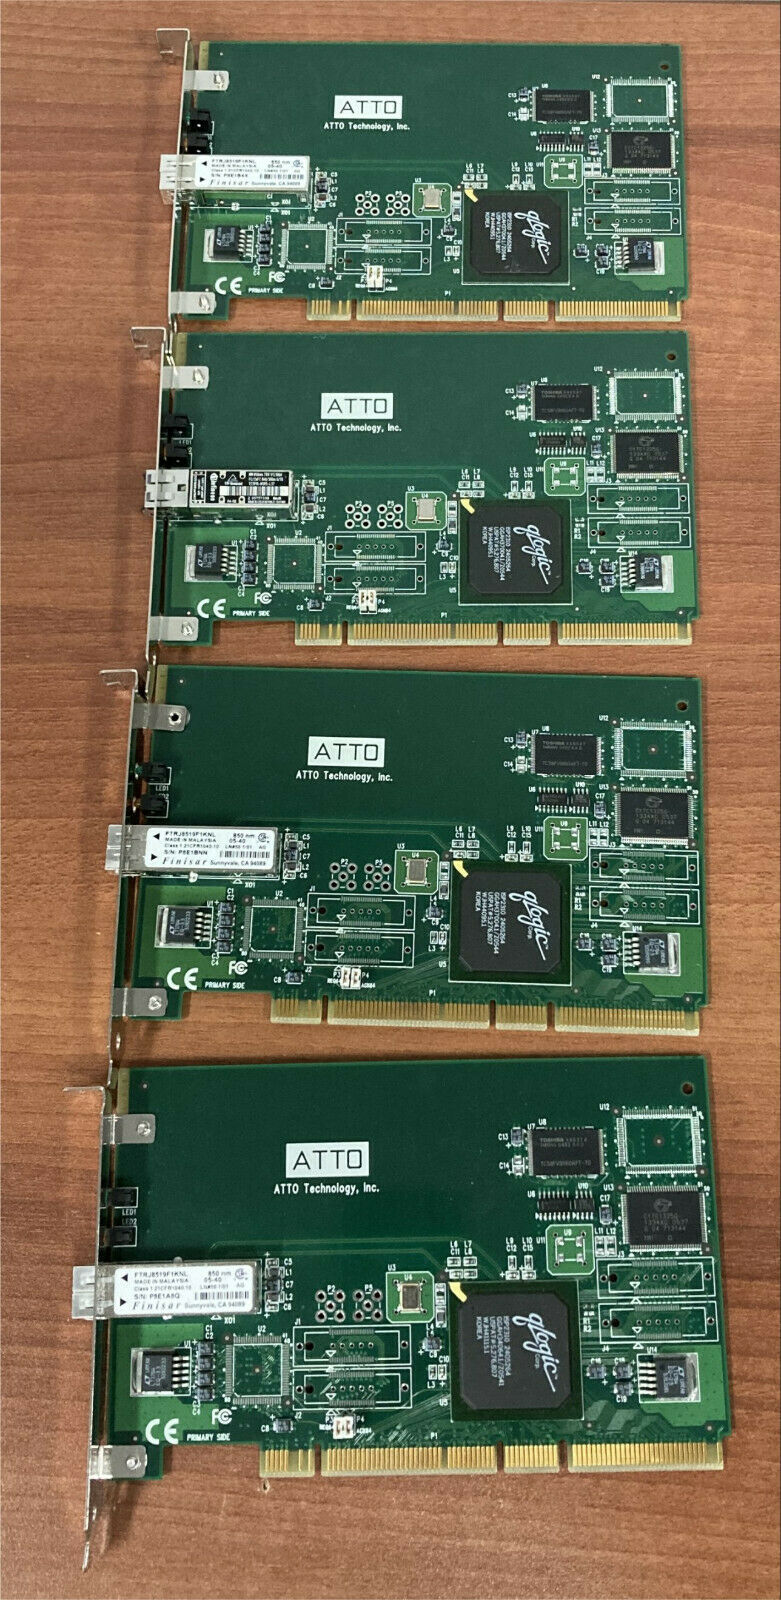 4x ATTO3300 2Gbps Fibre Channel Host Bus Adapter Optical LC PCI-X Network Cards